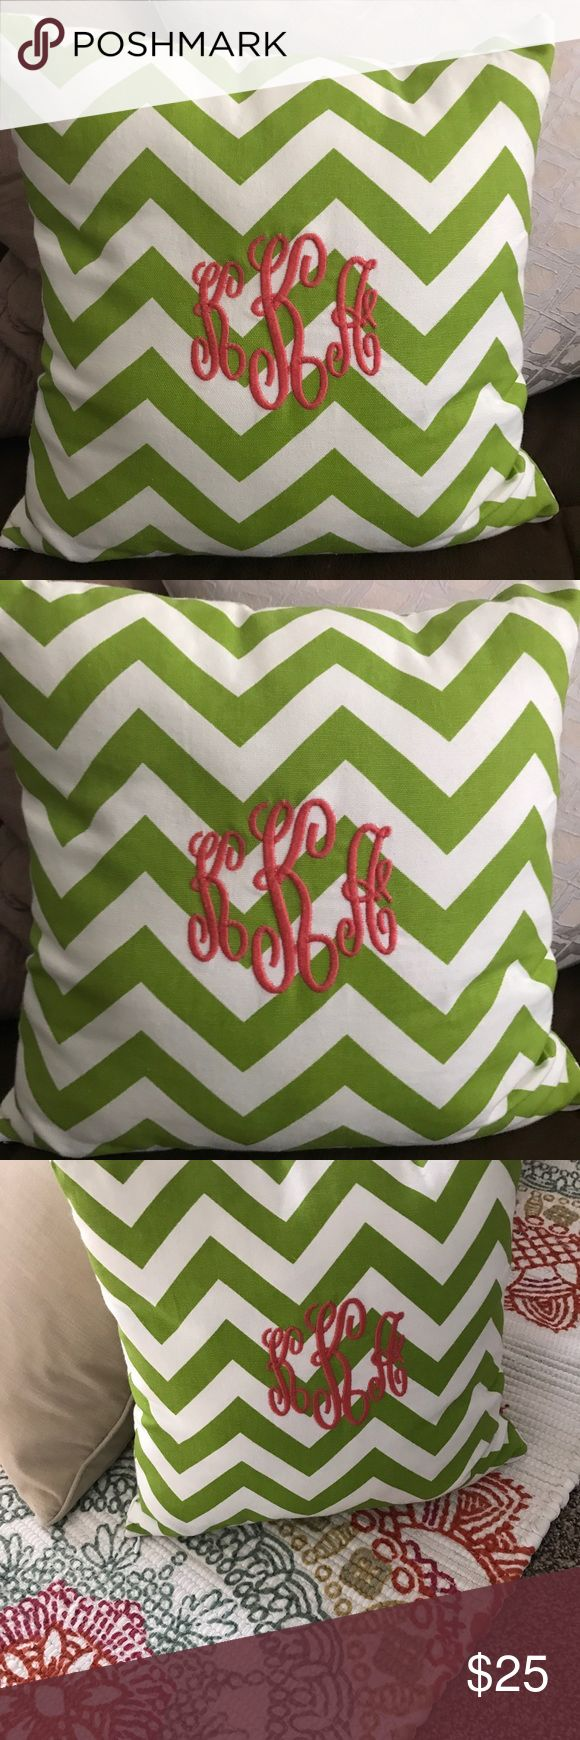 Chevron monogrammed KKA pillow cover and insert About to get married and monogram is changing. Too fabulous of a pillow to be stored in a closet! 13x13. Zipper canvas lime green and white chevron cover with coral embroidered monogram. kKa. Insert included. Other